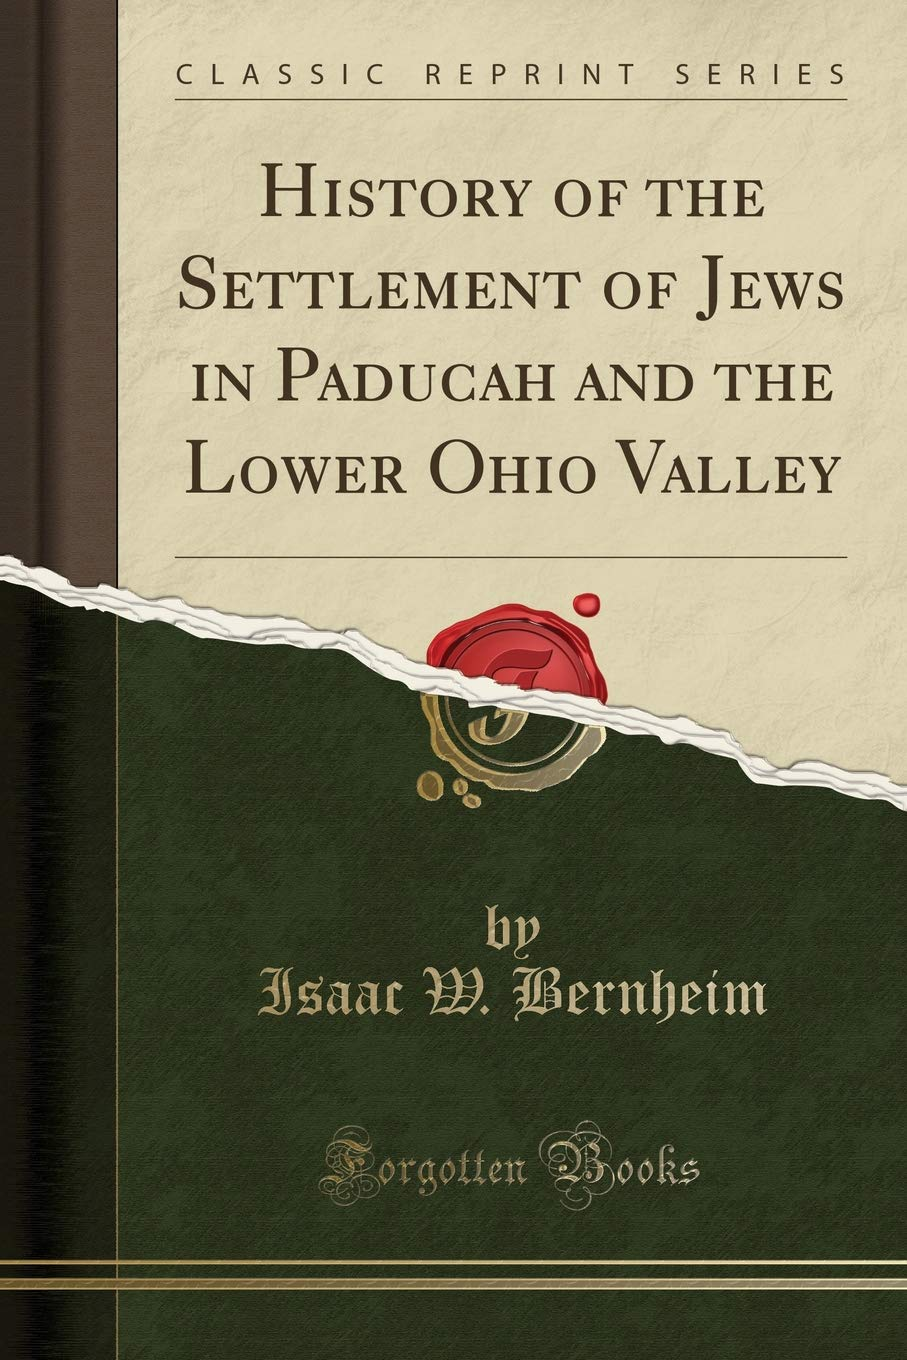 History of the Settlement of Jews in Paducah and the Lower Ohio Valley (Classic Reprint)